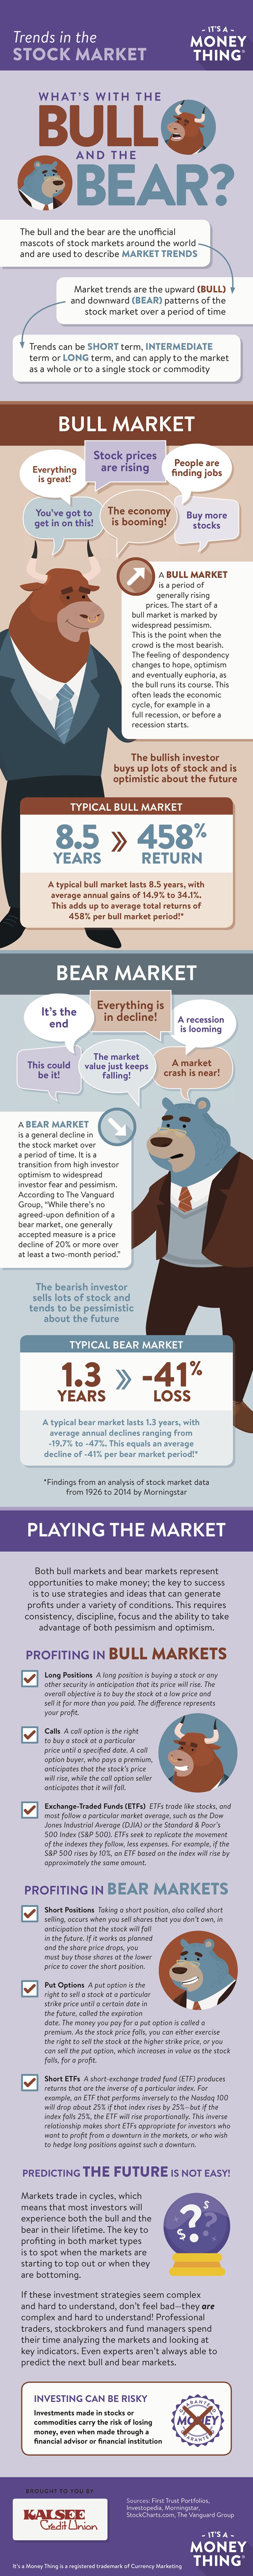 Trends in the stock market infographic, click for transcription